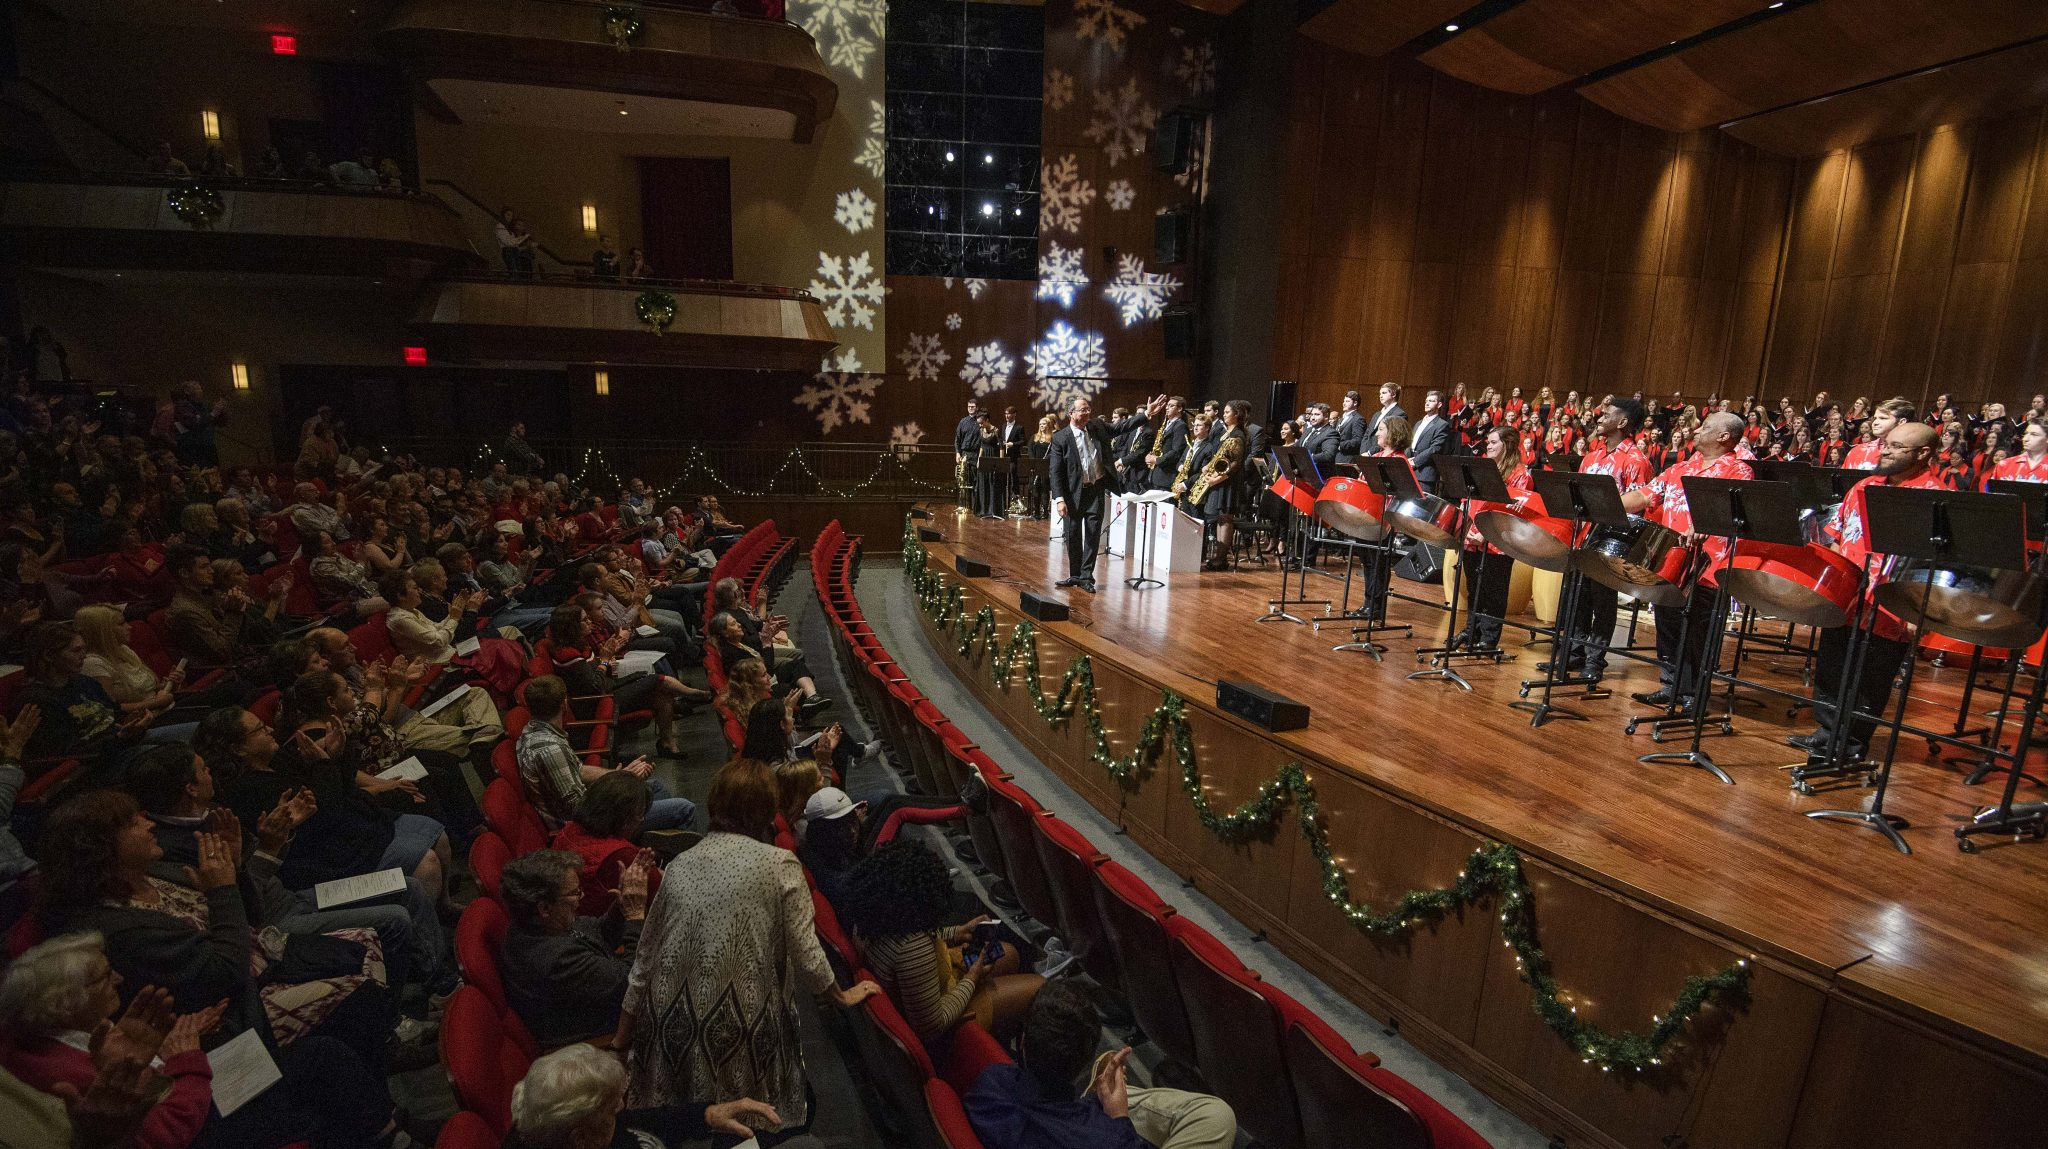 The University of Mississippi Department of Music will offer its 2019 Holiday Concert at 7:30 p.m. Dec. 5 at the Gertrude C. Ford Center for the Performing Arts. Photo by Thomas Graning/Ole Miss Digital Imaging Services